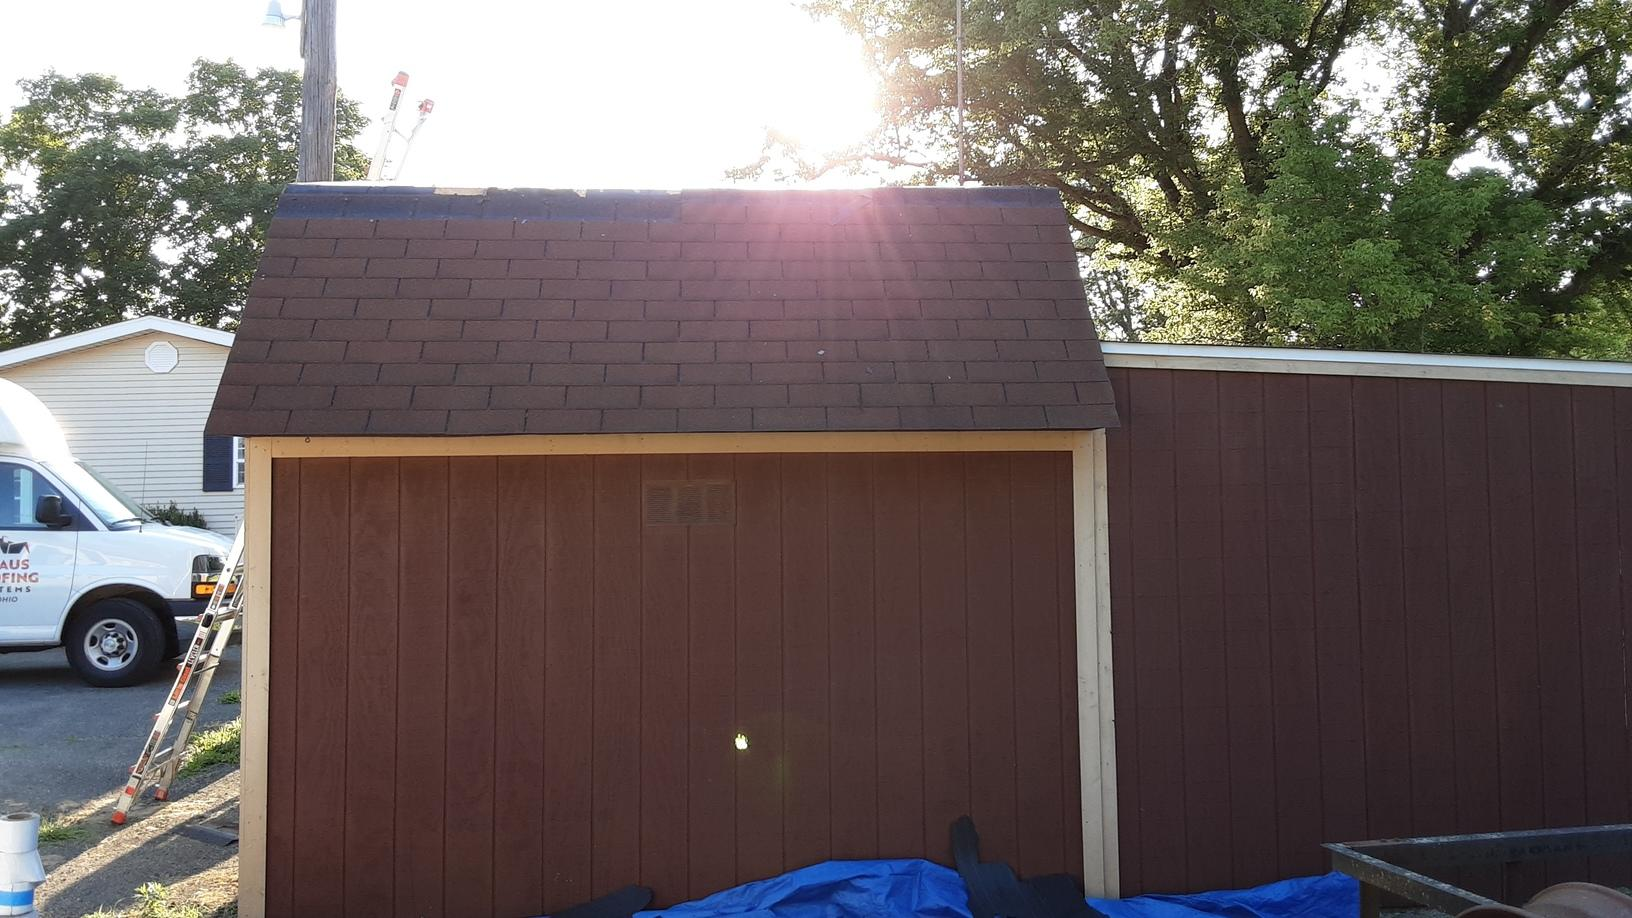 Original Roof with Missing Shingles in Marengo, OH